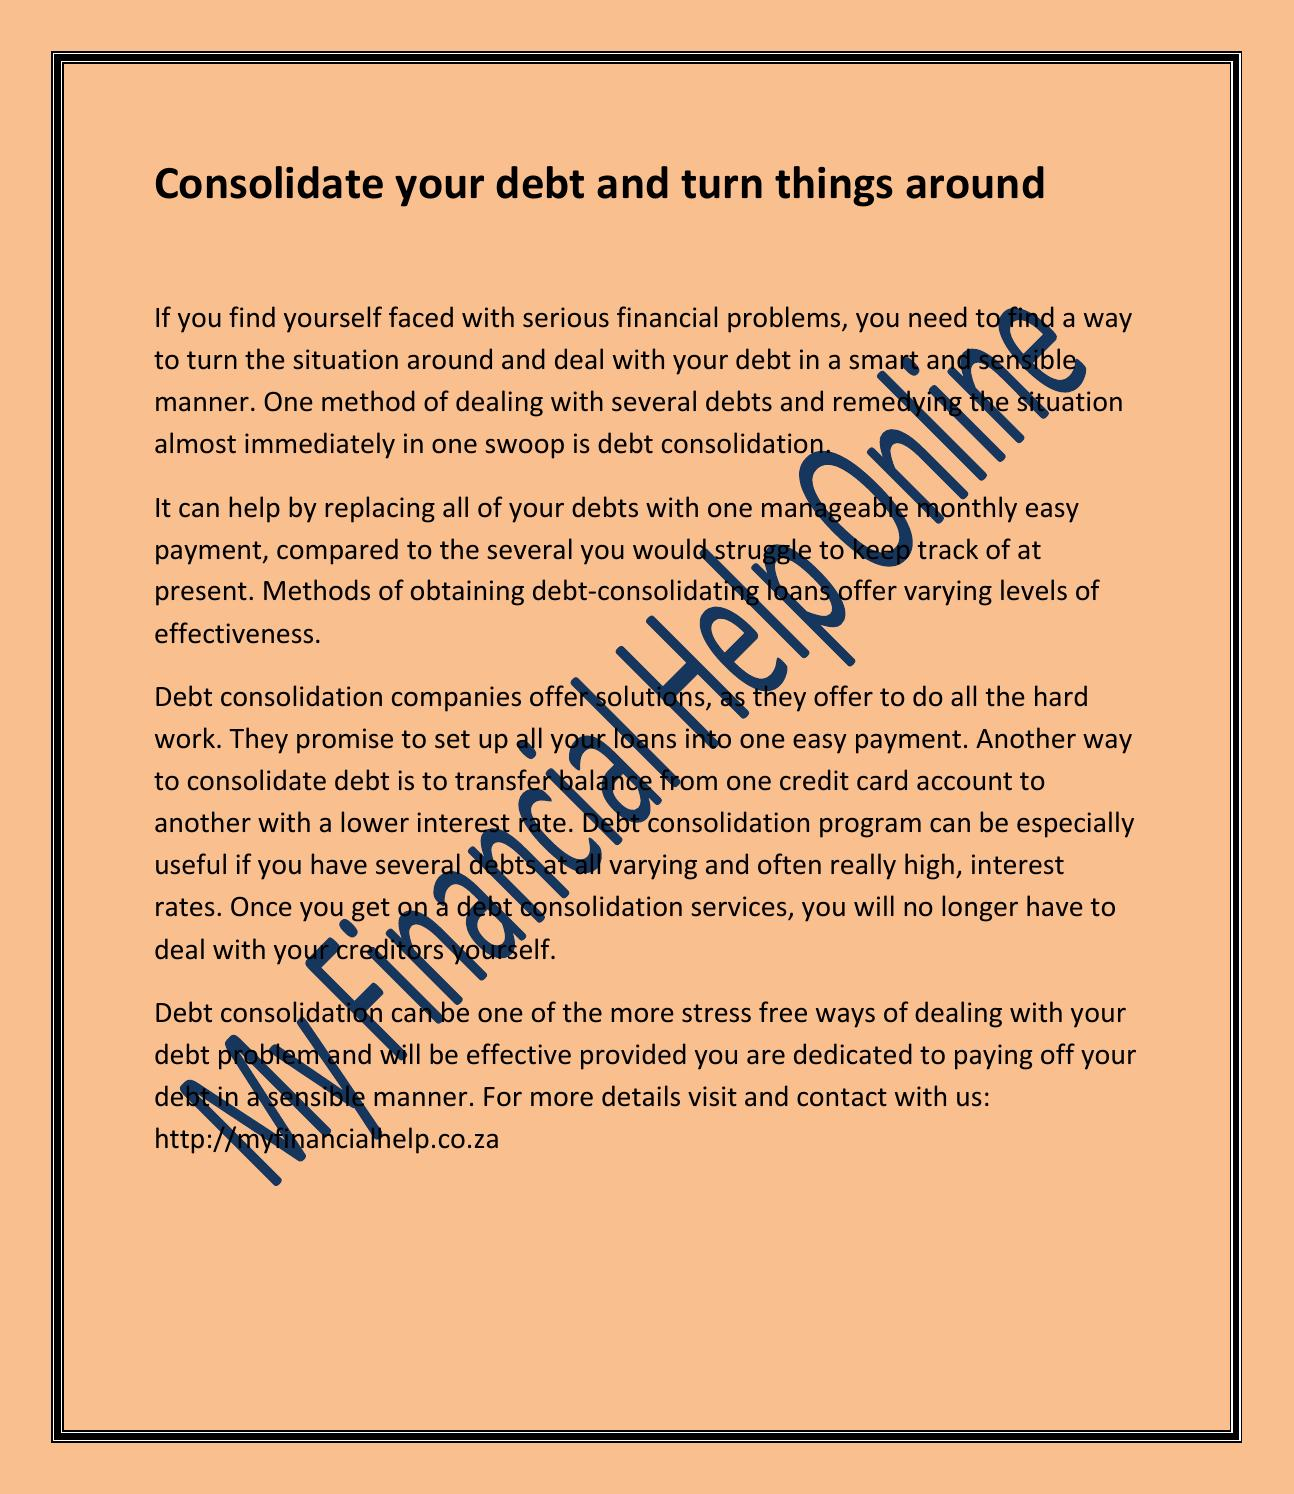 consolidate your debt | my financial help by eugene cilliers - issuu